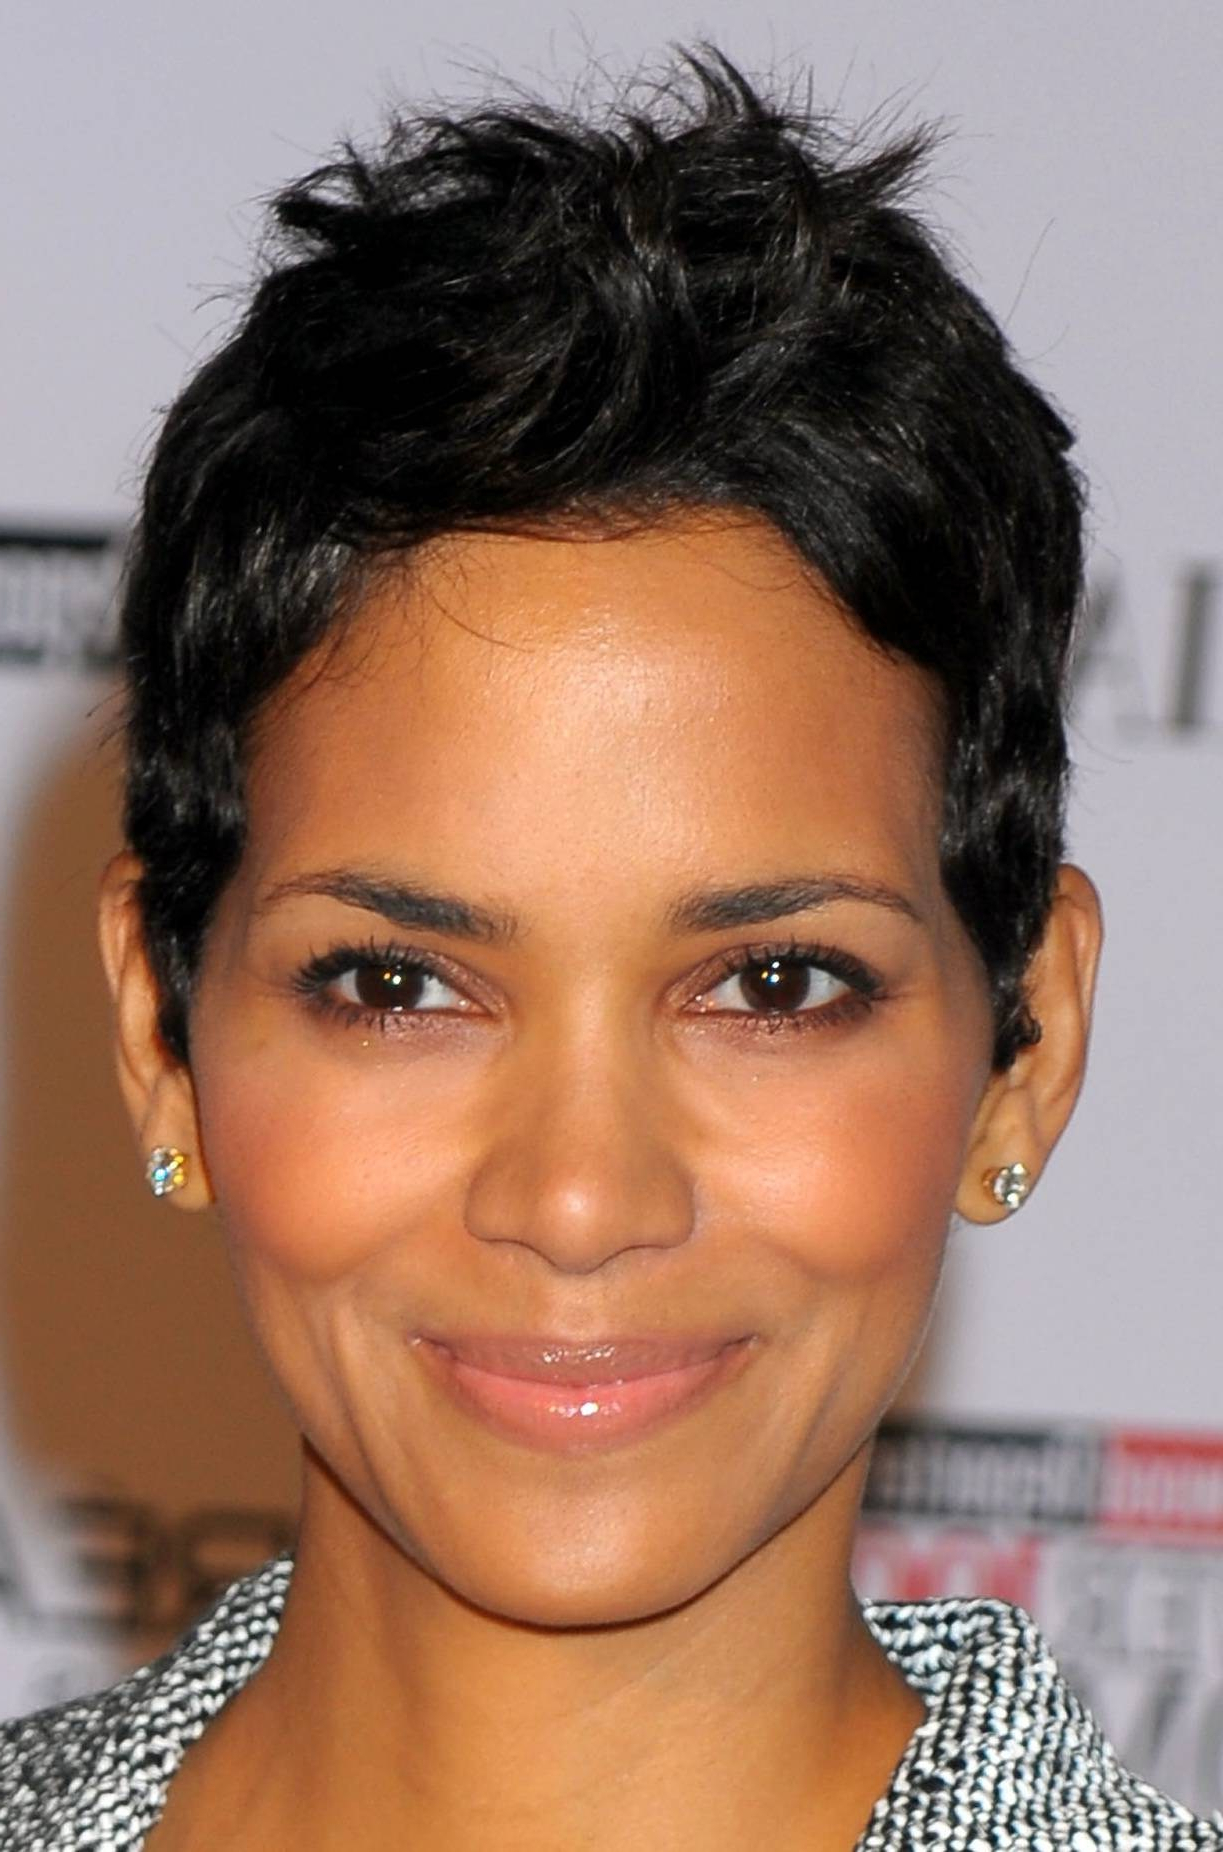 30 Luxury Short Haircuts For Women With Round Faces ~ Louis Palace In Short Haircuts For Black Women Round Face (View 18 of 25)